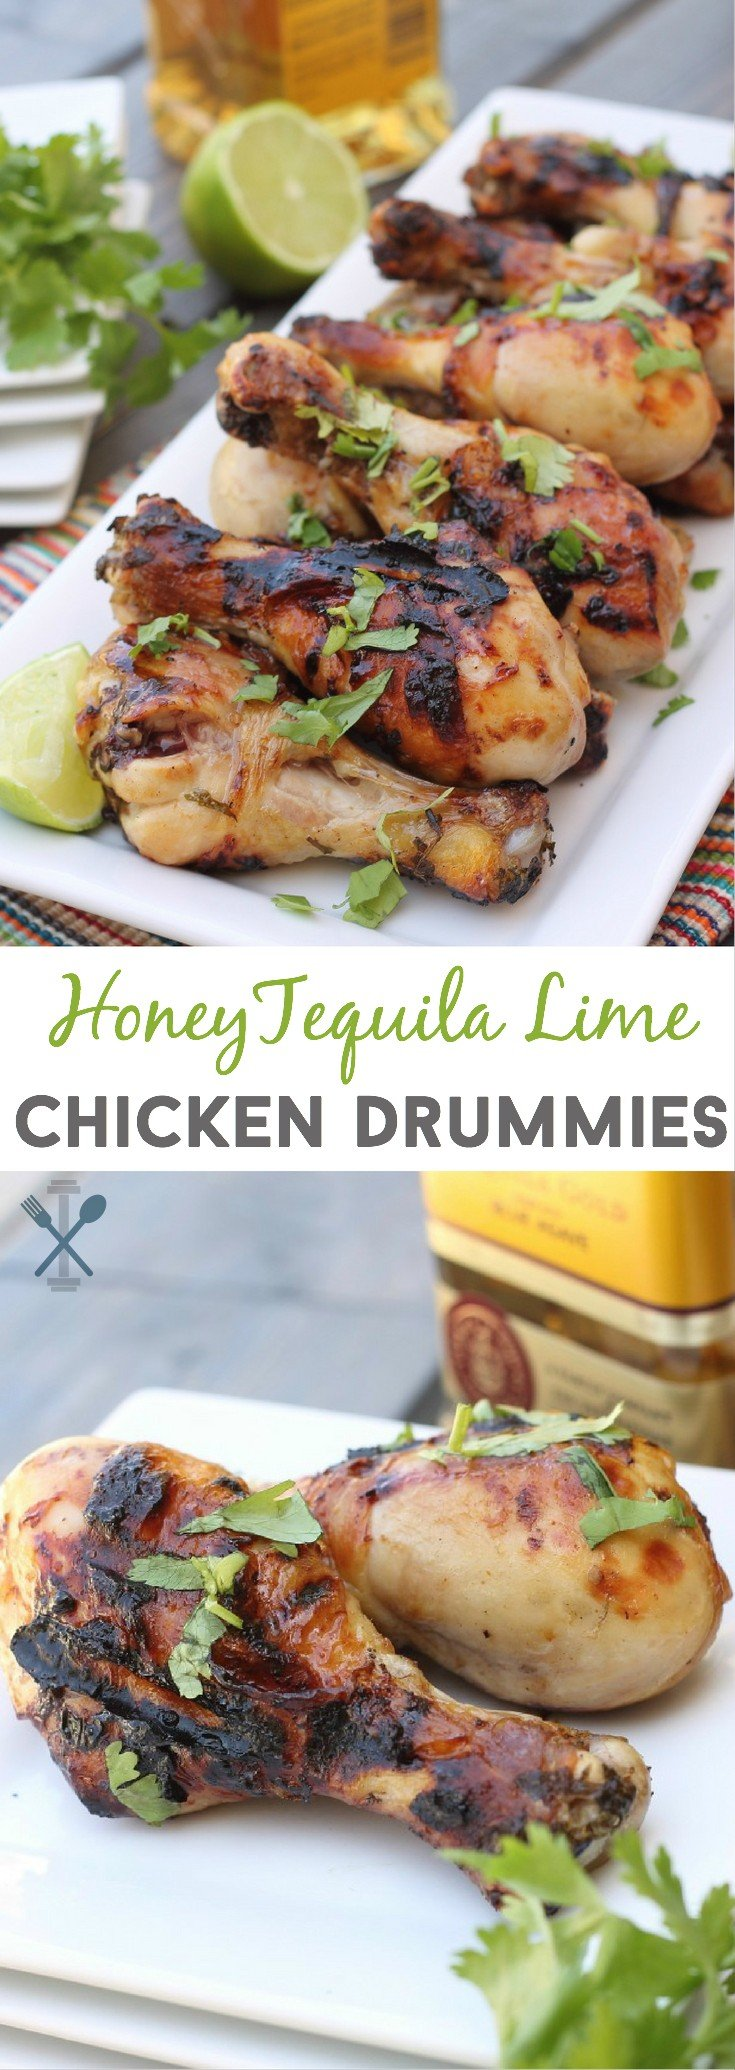 The ultimate football party snack. These honey tequila lime chicken drummies are sweet and tender with a boozy lime marinade that gives the meat a TON of flavor!